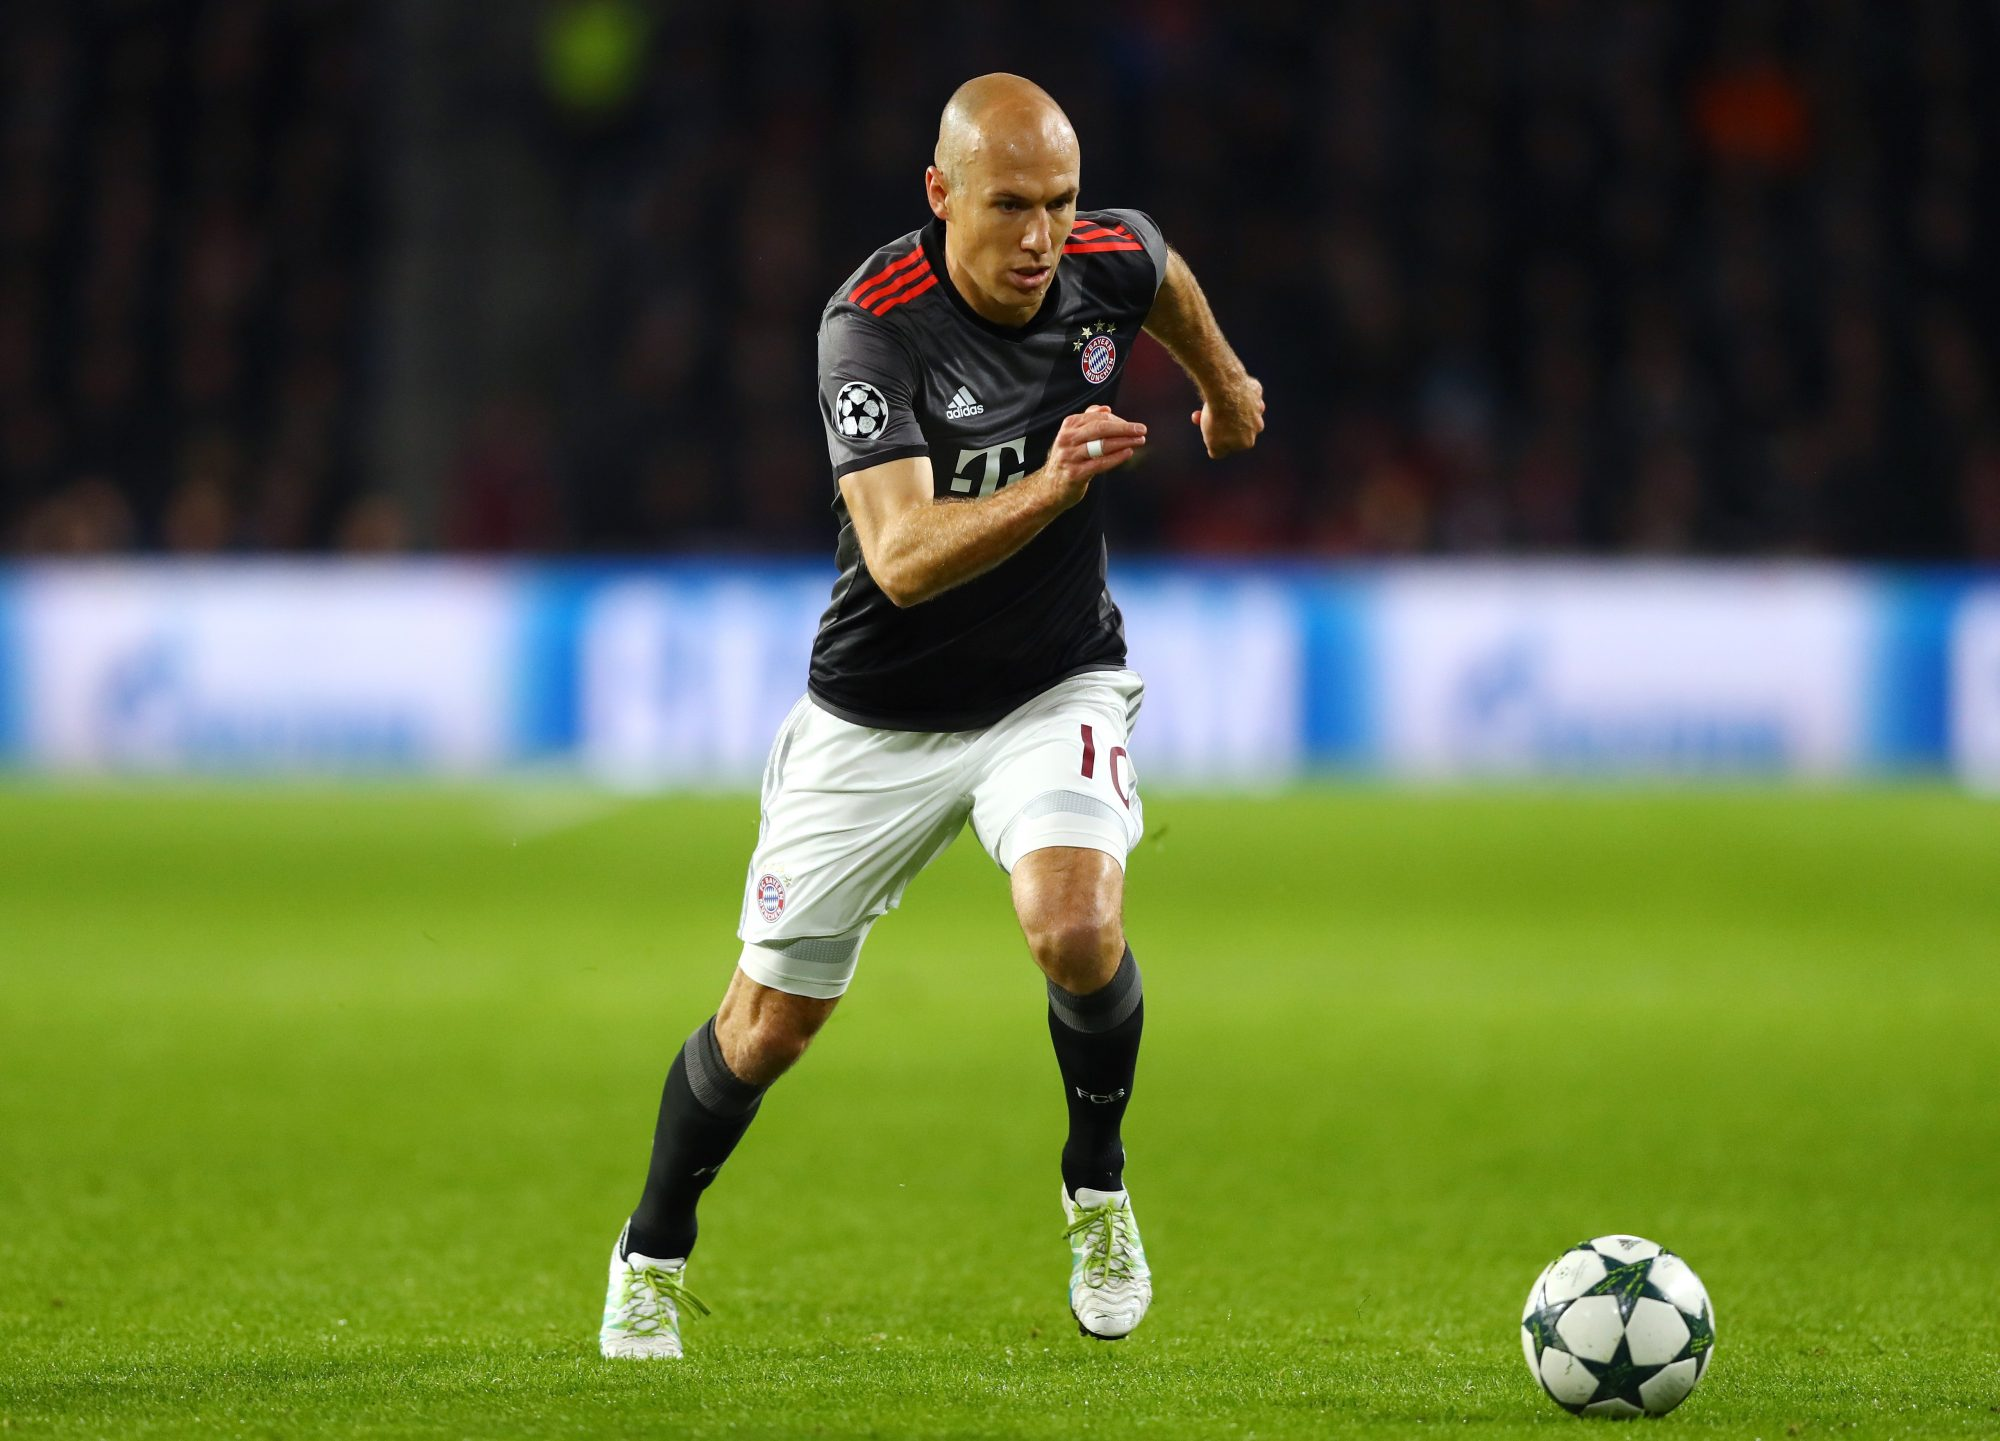 Robben läuft an.(Foto: Dean Mouhtaropoulos / Getty Images)